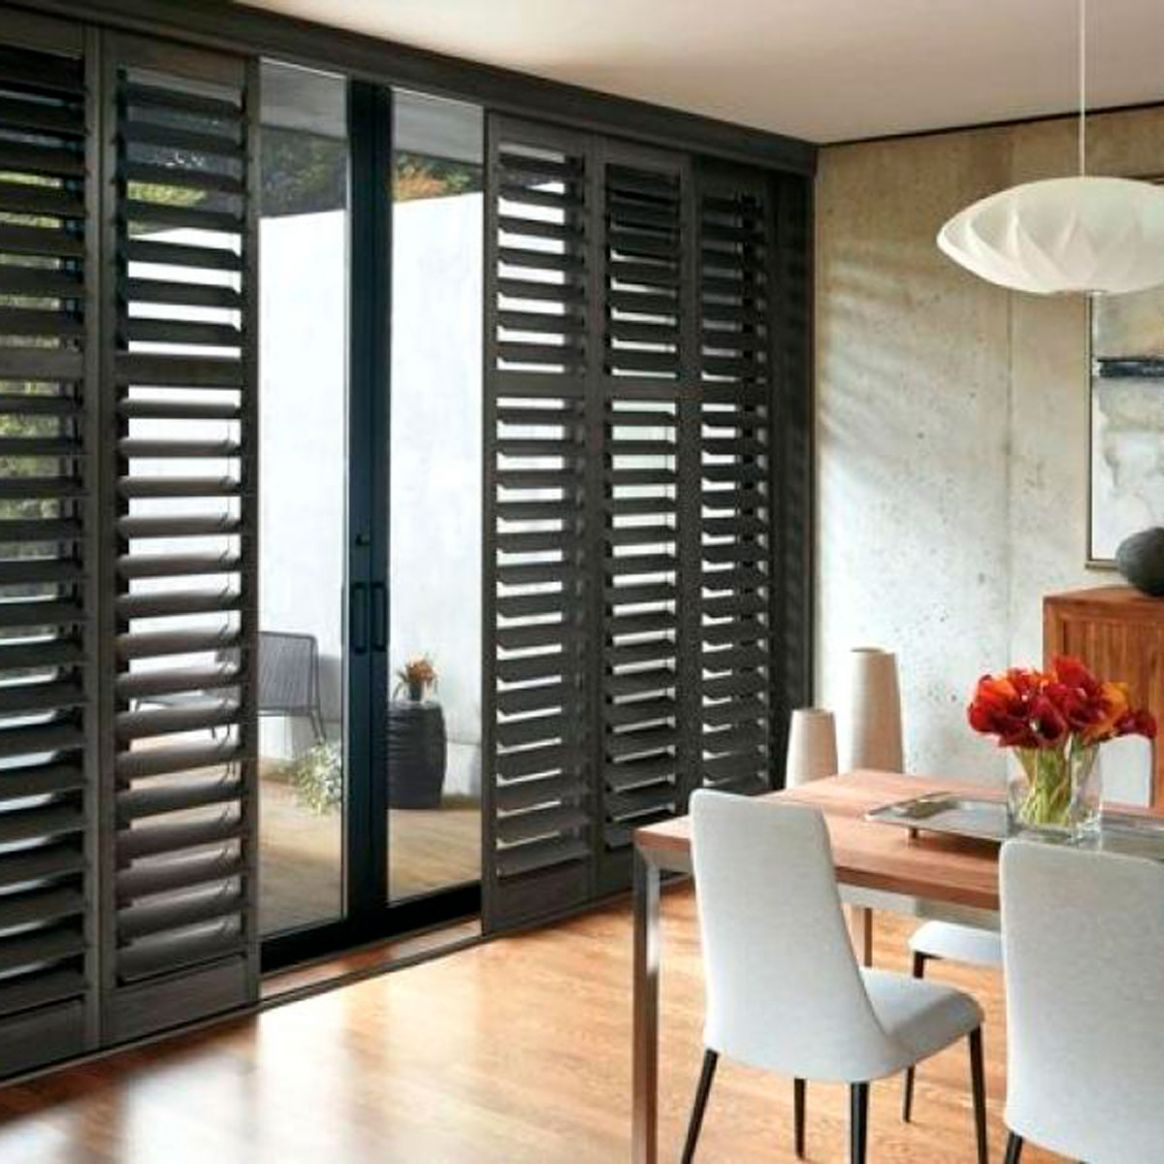 Patio Door Curtain Ideas for Different Needs and Tastes | Family ..